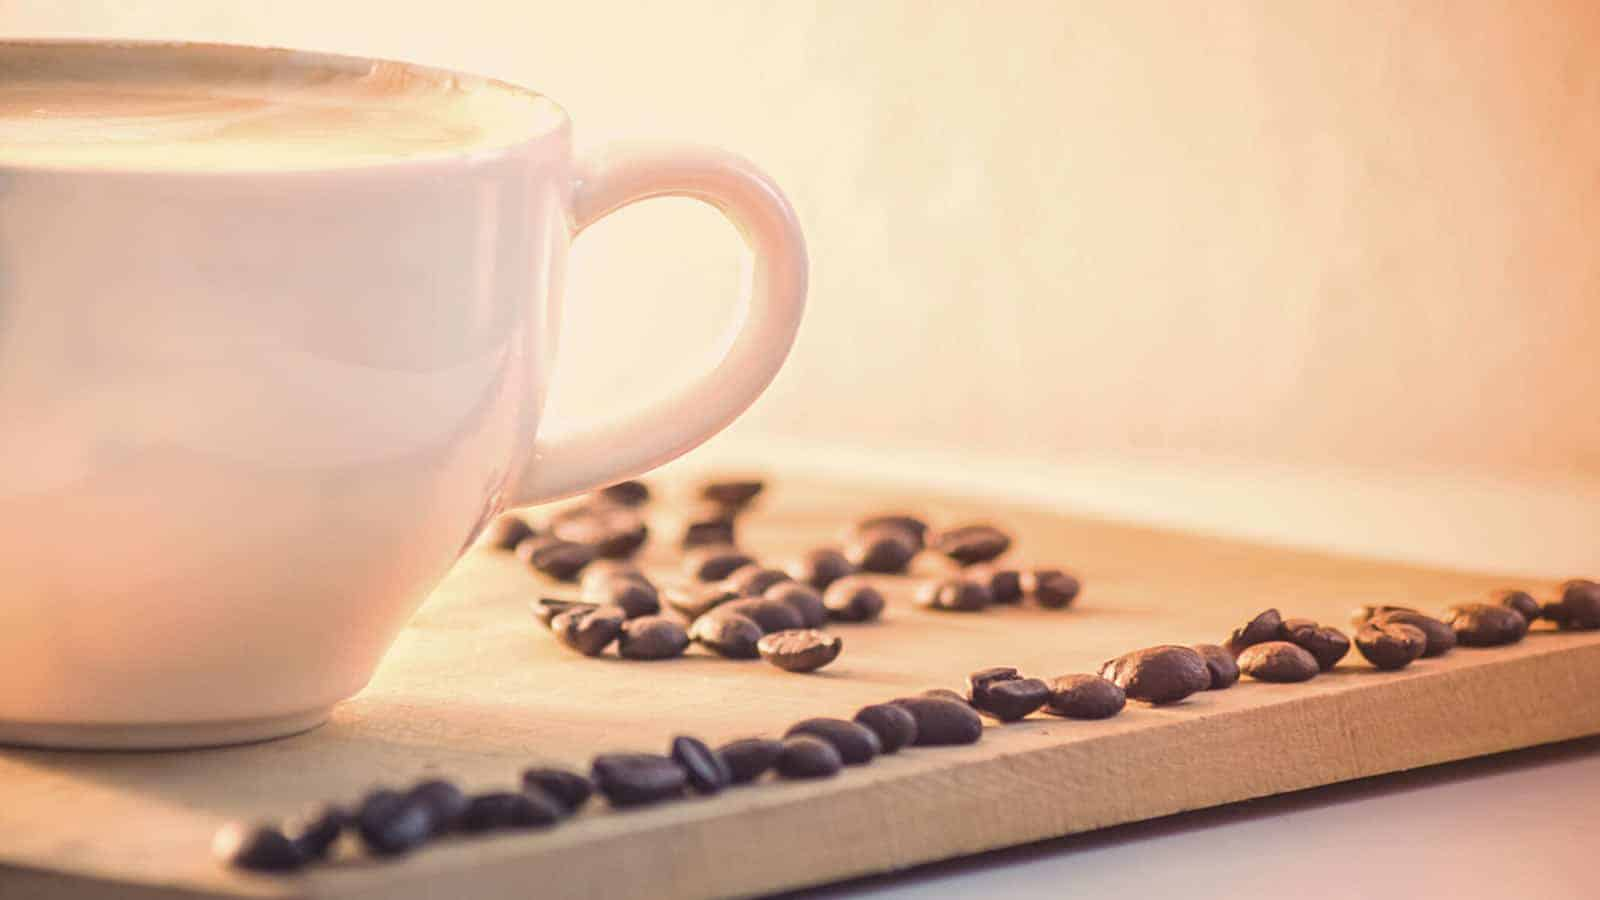 Have coffee before meditation to have better exxperience